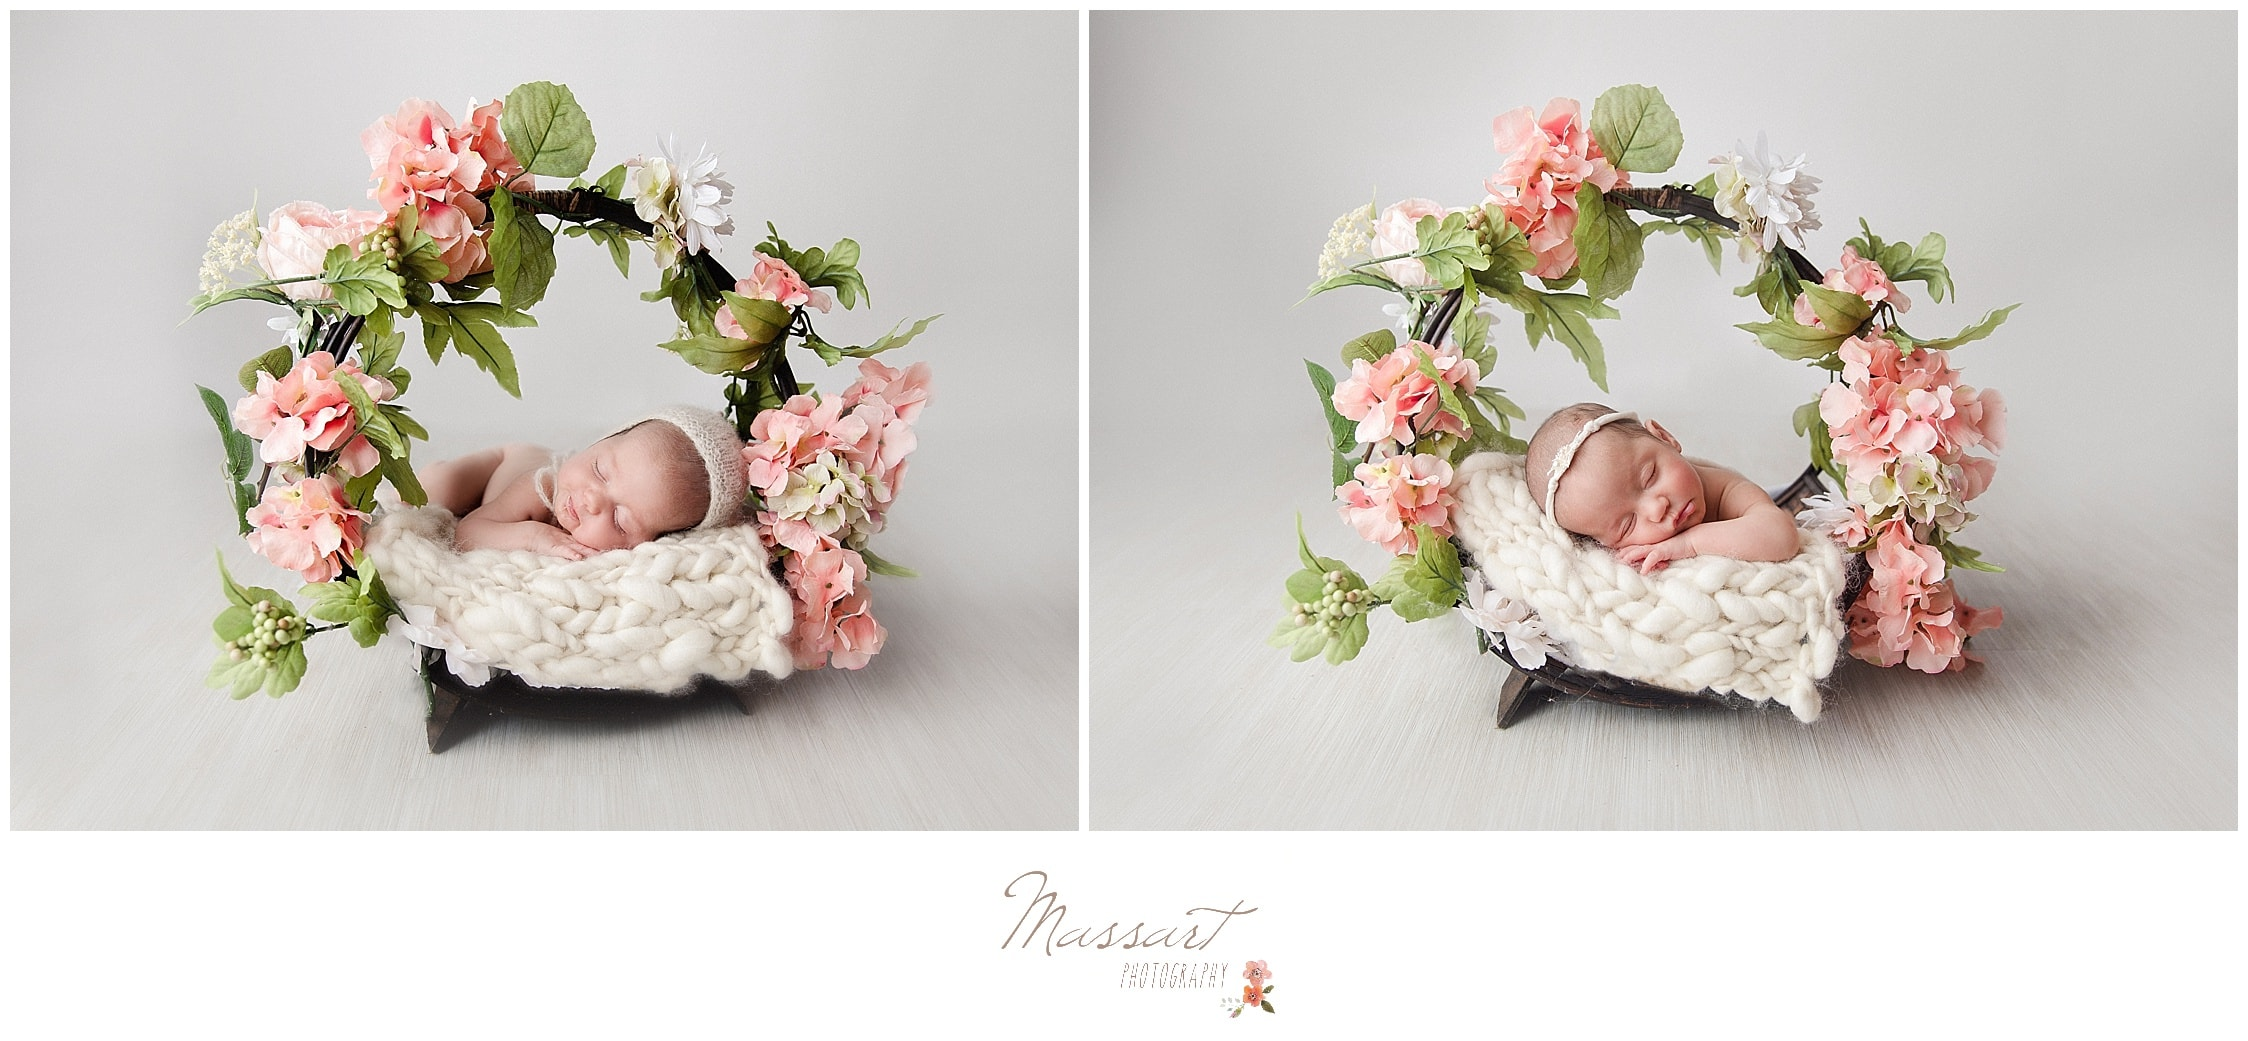 Newborn twin baby girls in floral baskets photographed by Massart Photography Rhode Island